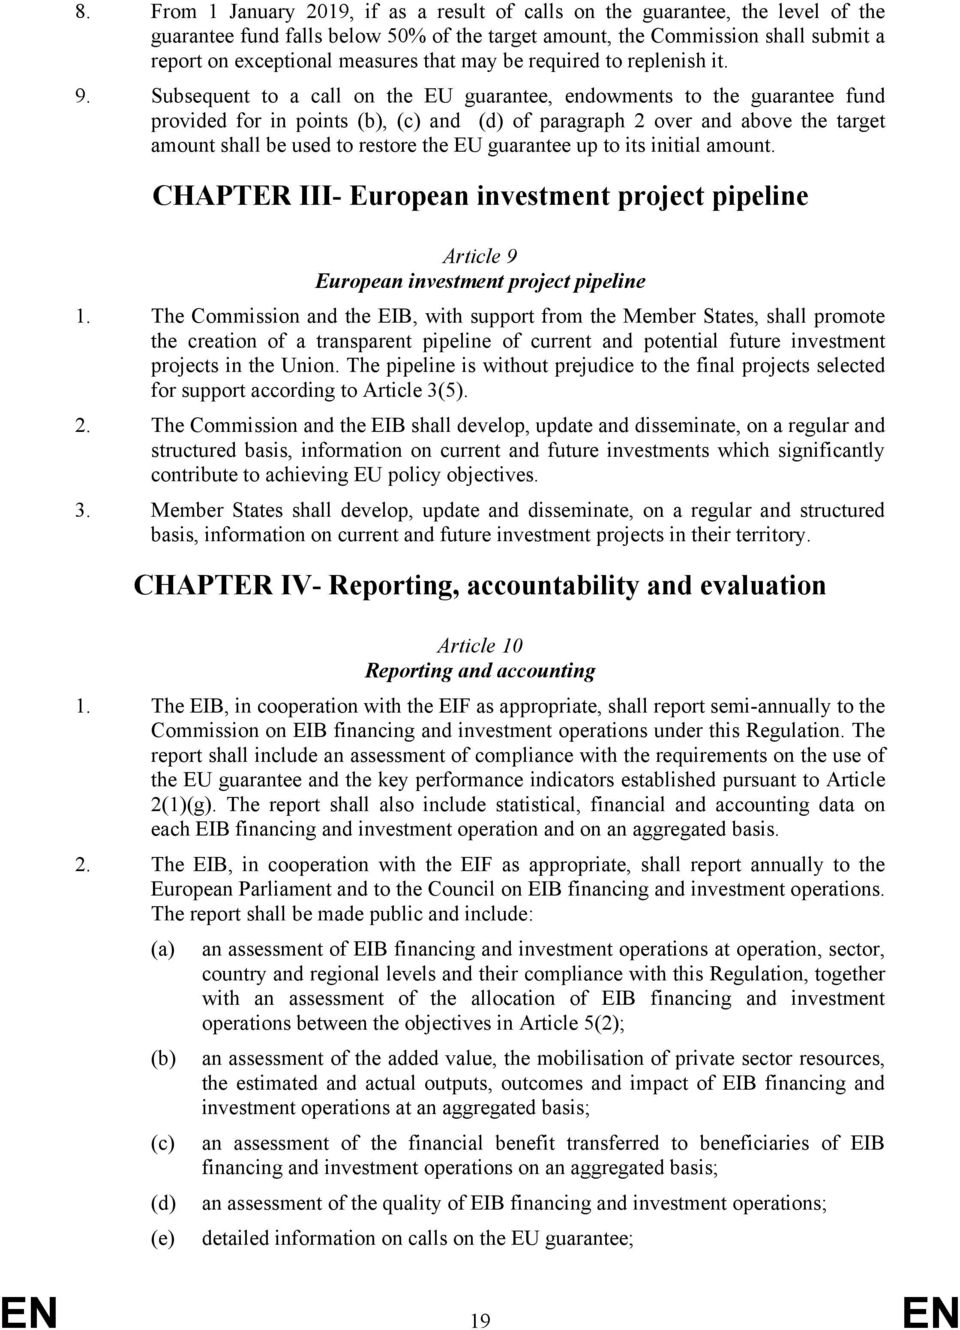 Subsequent to a call on the EU guarantee, endowments to the guarantee fund provided for in points (b), (c) and (d) of paragraph 2 over and above the target amount shall be used to restore the EU